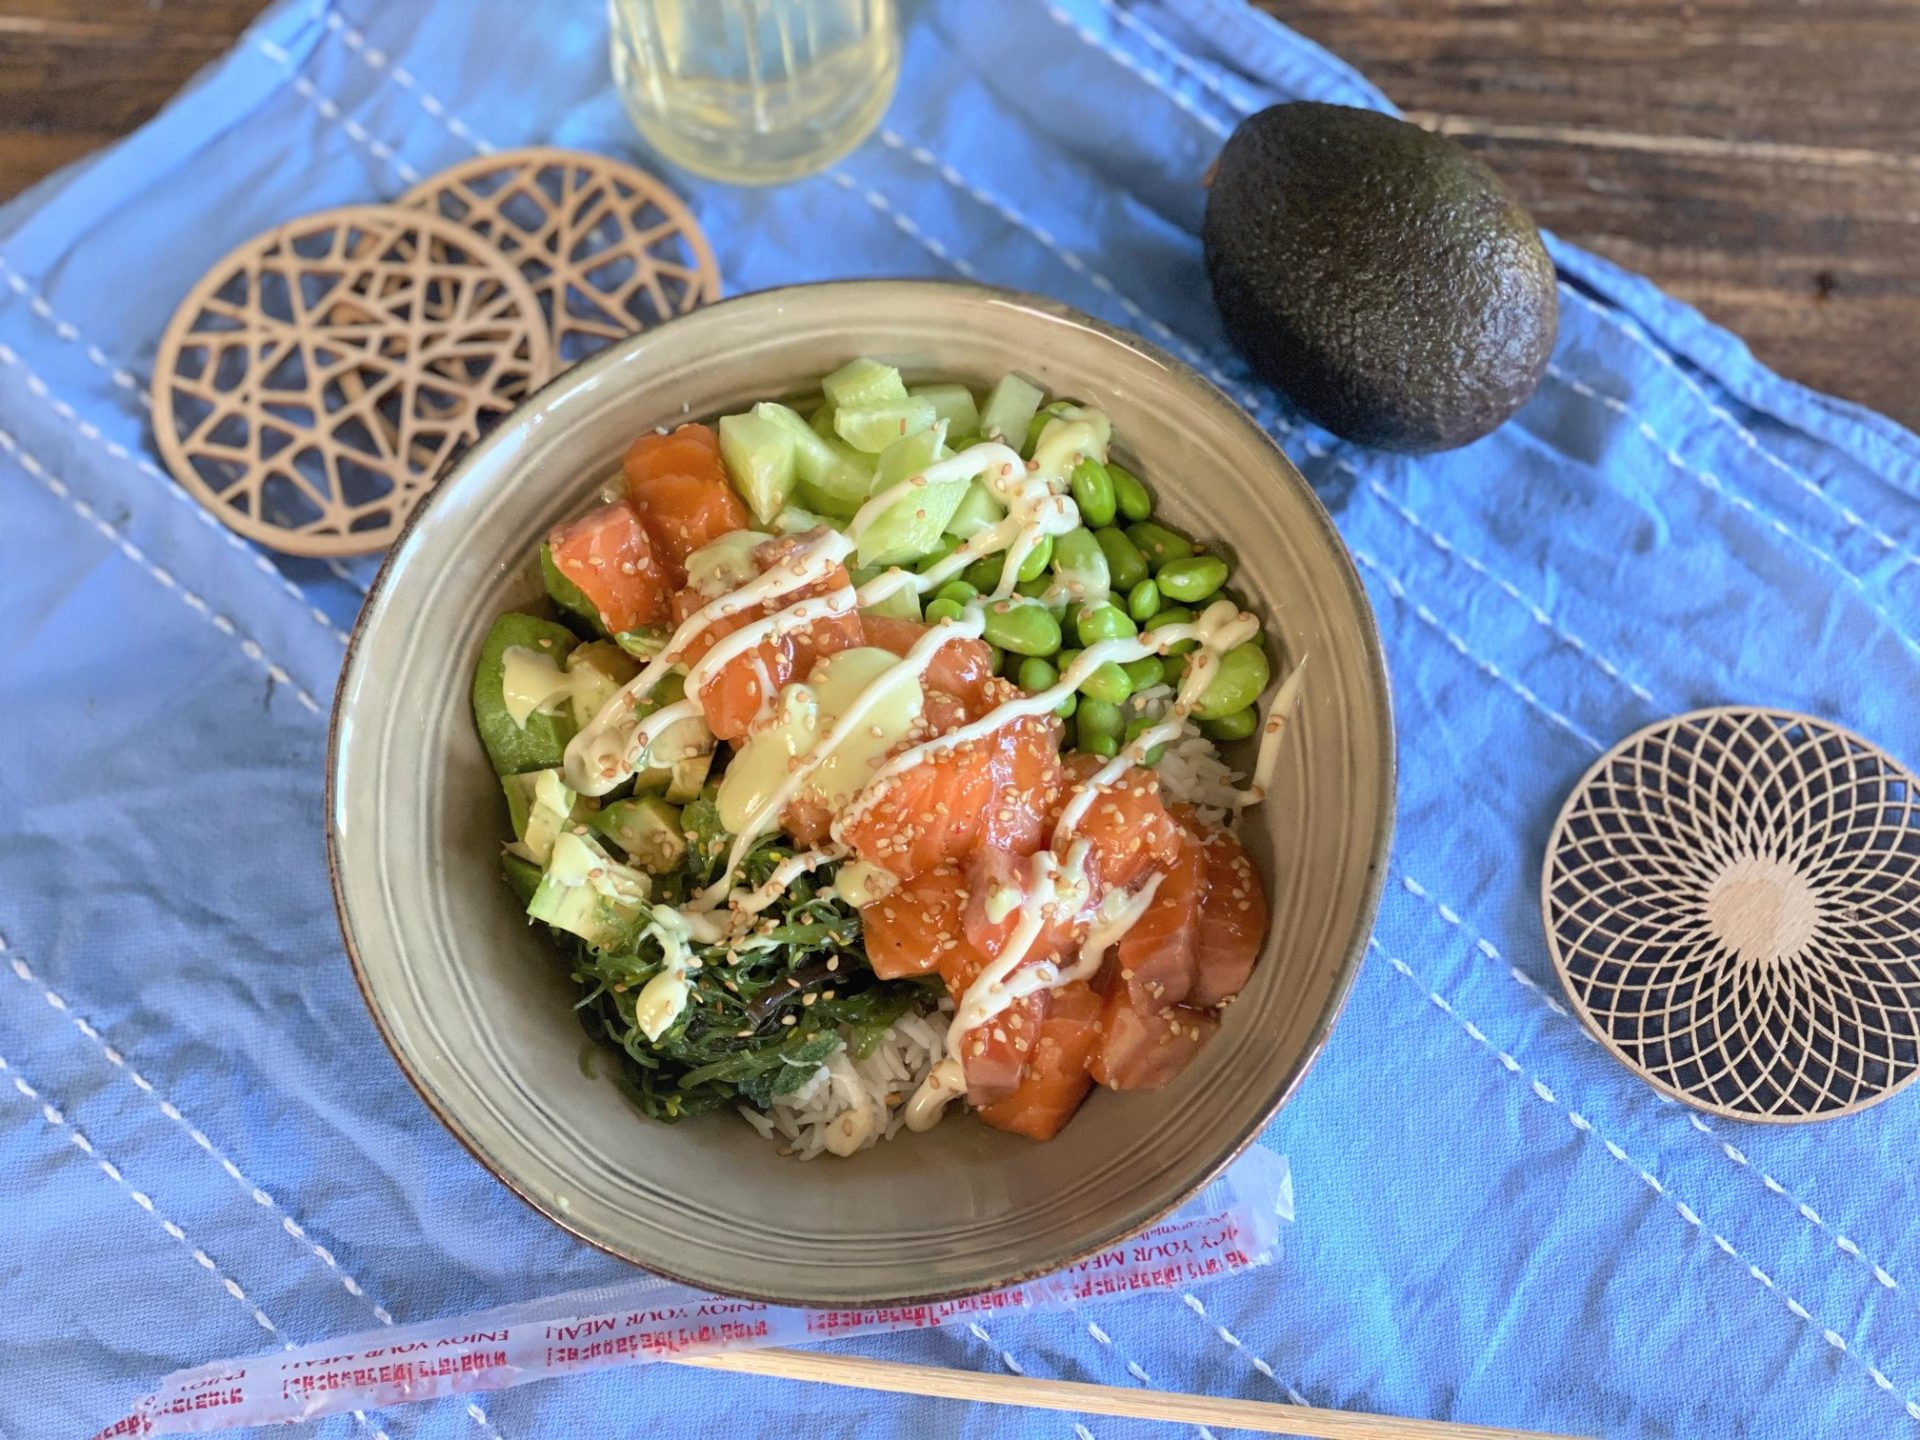 Spicy zalm poke bowl met gemengde groente - Sushi bowl recept - Foodblog Foodinista